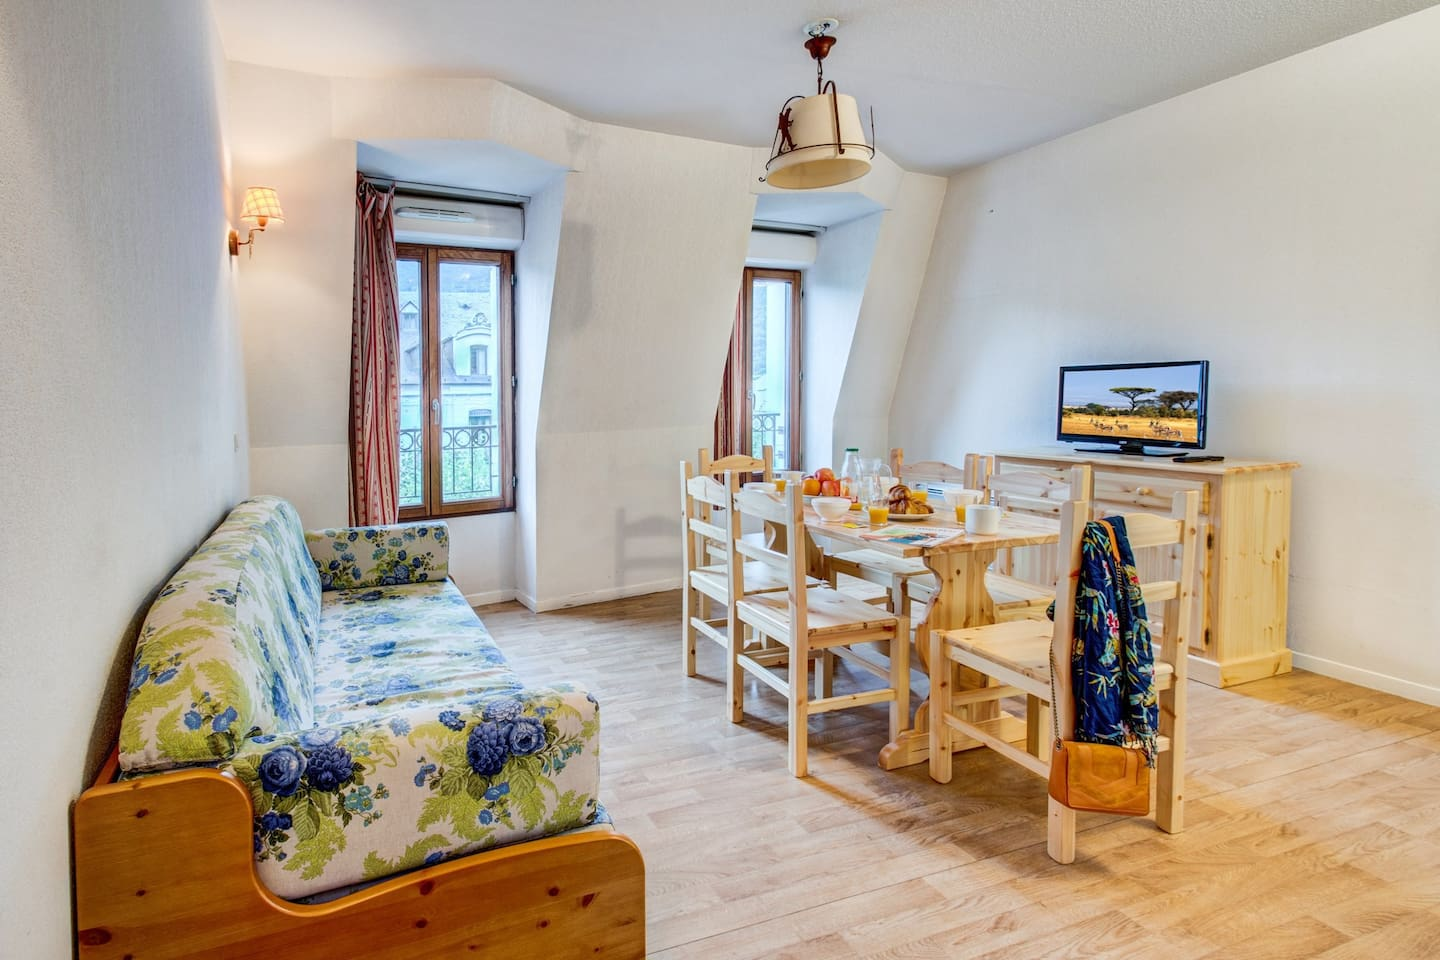 Welcome to our cozy and charming apartment in Luchon!